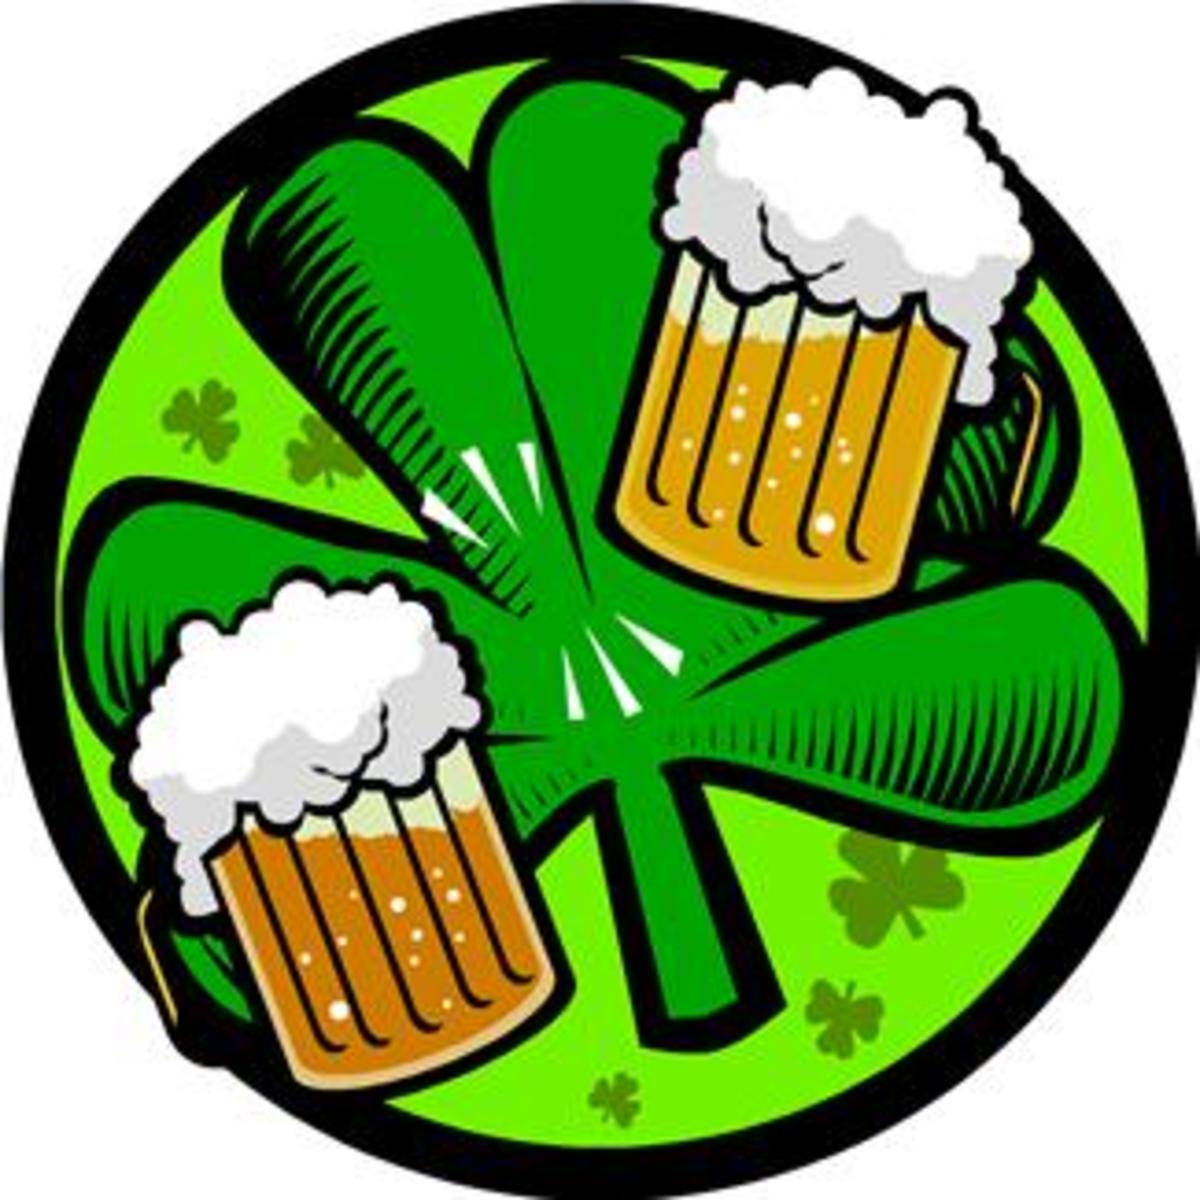 St. Patrick's Day Image with Foaming Beer and Shamrock